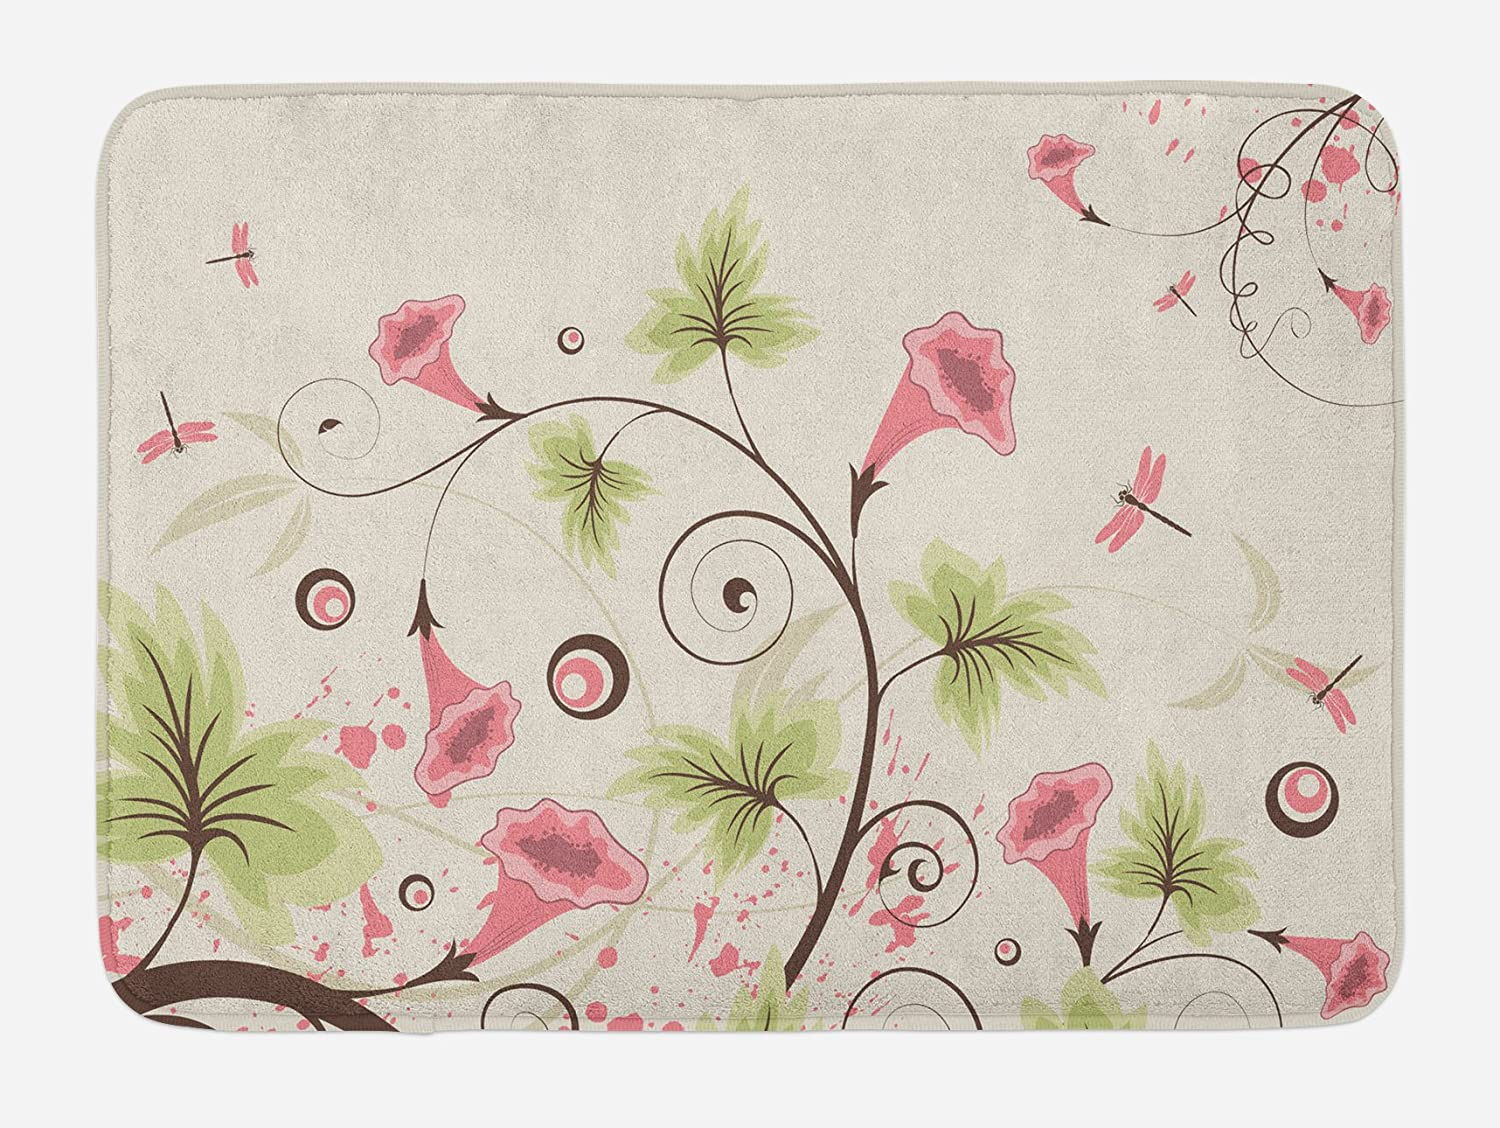 Lunarable Dragonfly Bath Mat, Cup Shaped Romantic Swirling Pastel Vibrant Flowers and Mature Dragonflies Print, Plush Bathroom Decor Mat with Non Slip Backing, 29.5